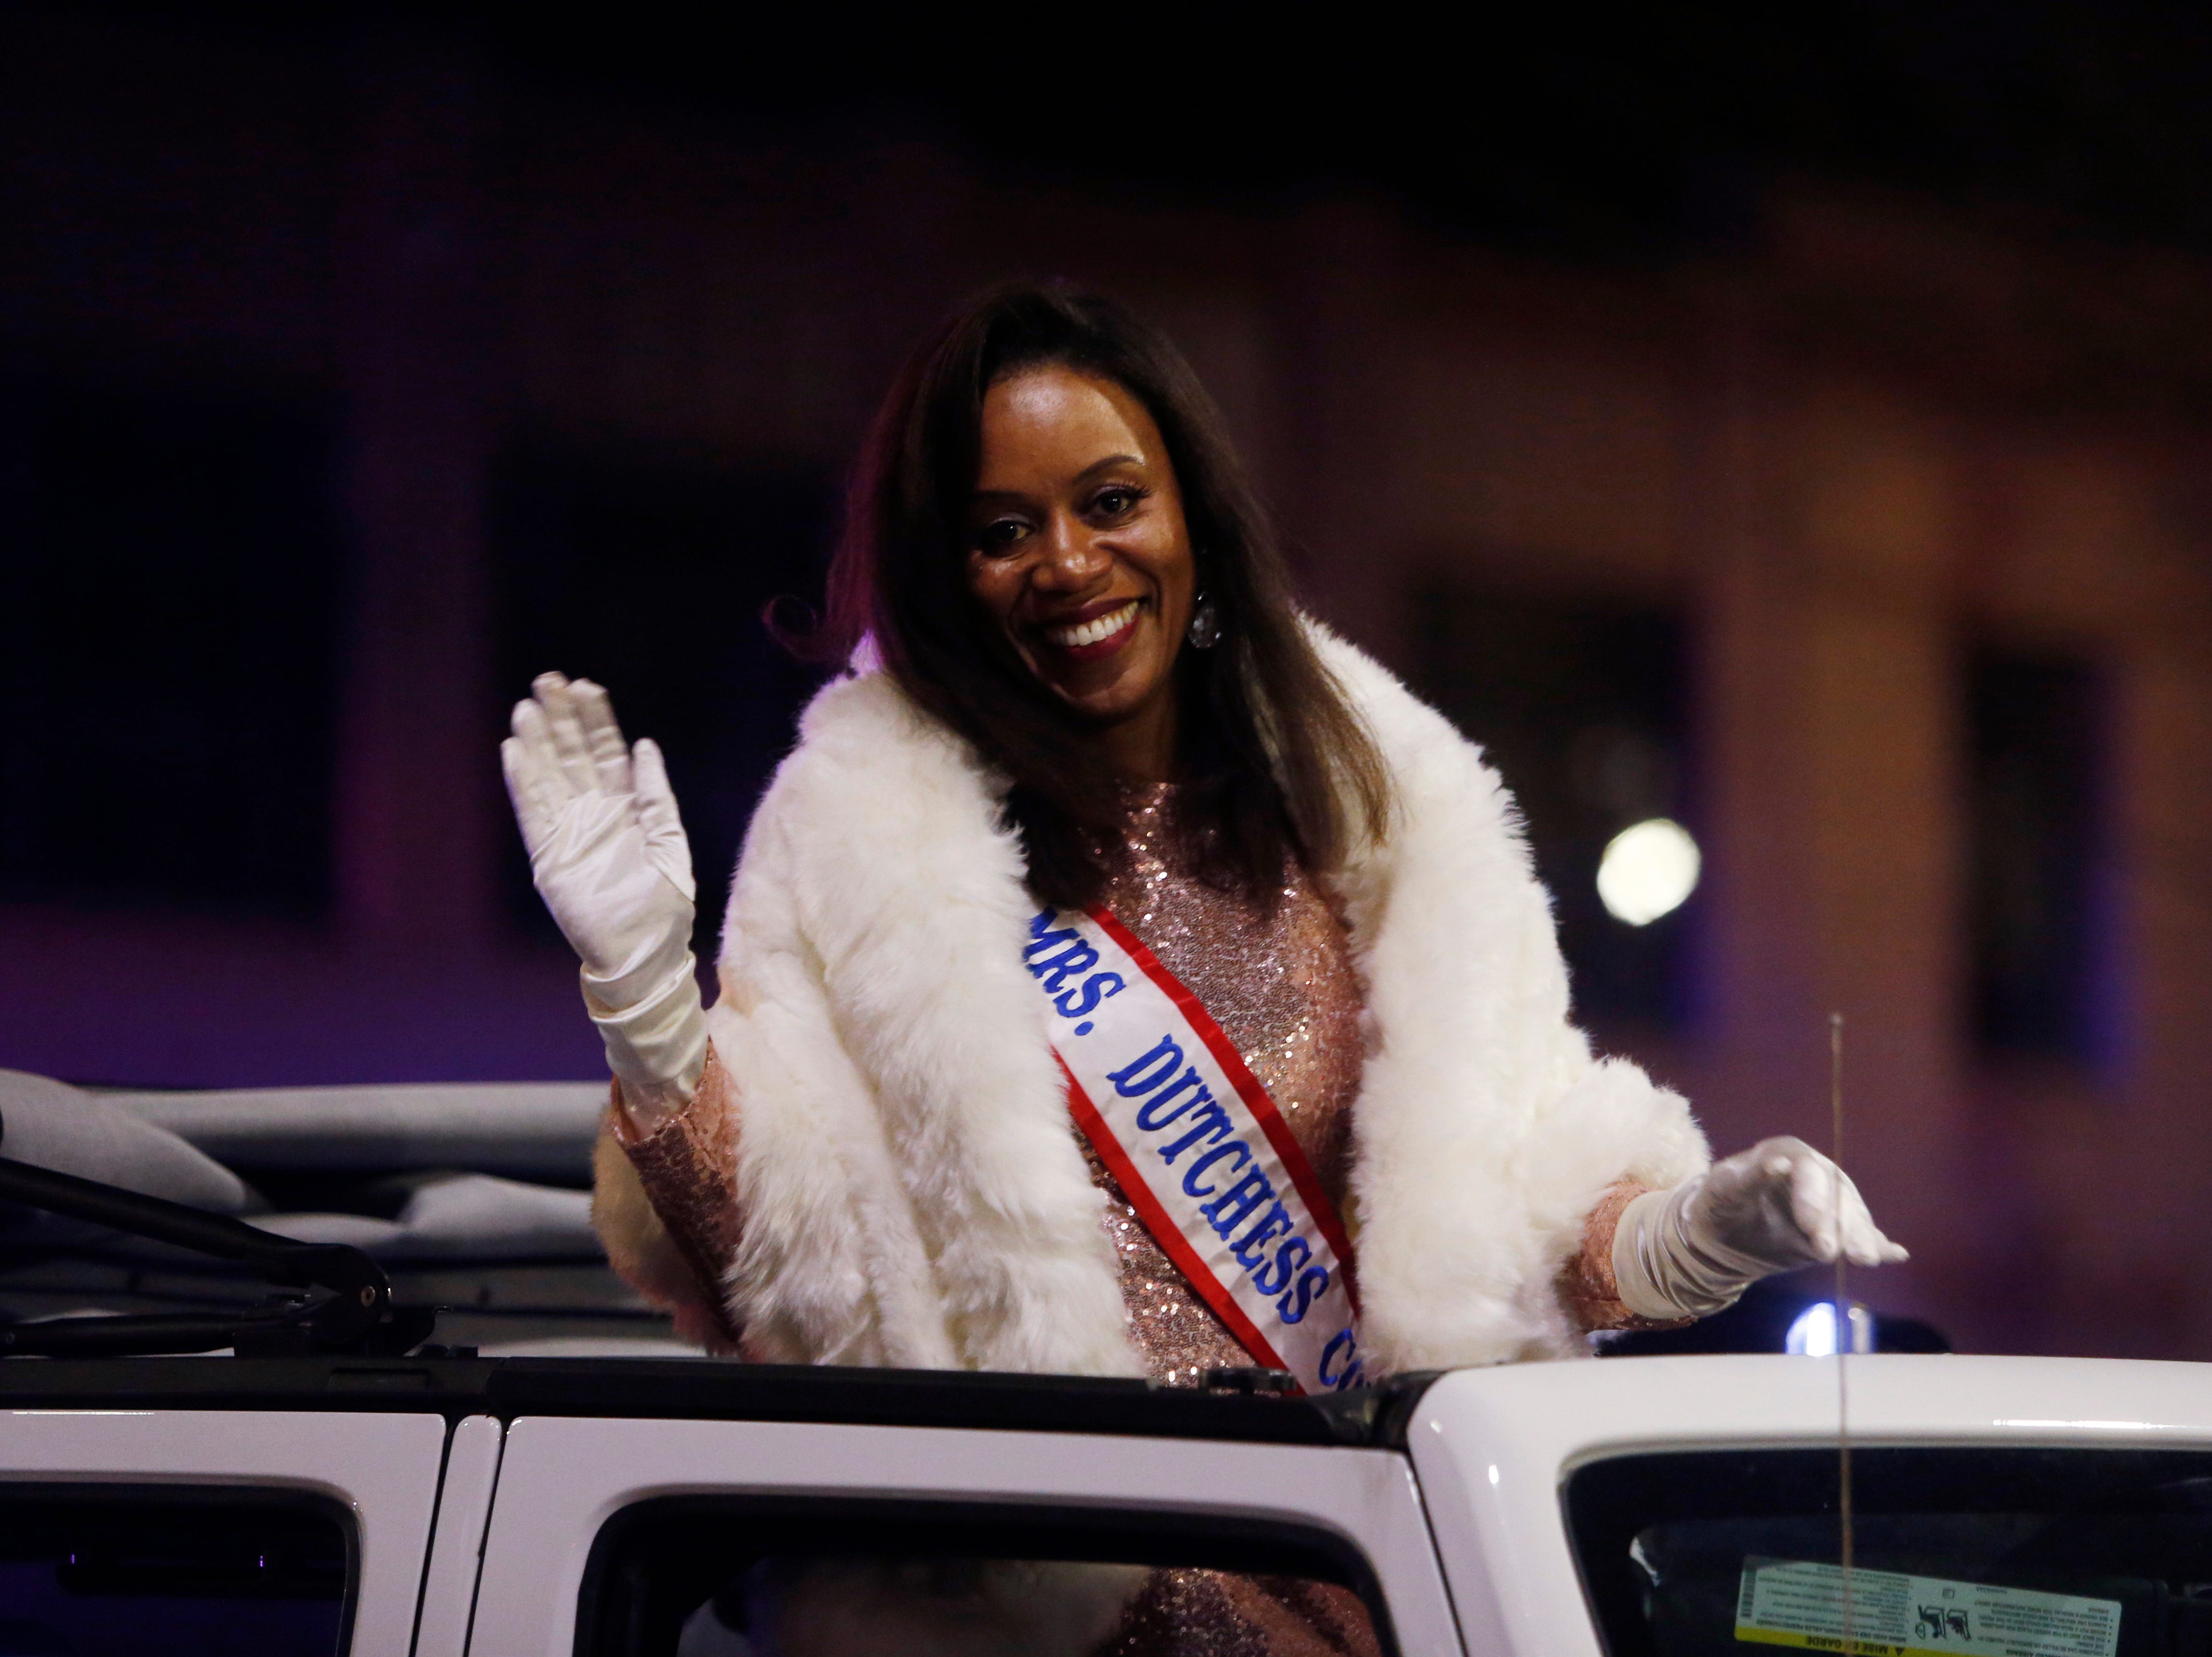 Jackie Berry, Mrs. Dutchess County during the Celebration of Lights Parade in the City of Poughkeepsie on November 30, 2018.